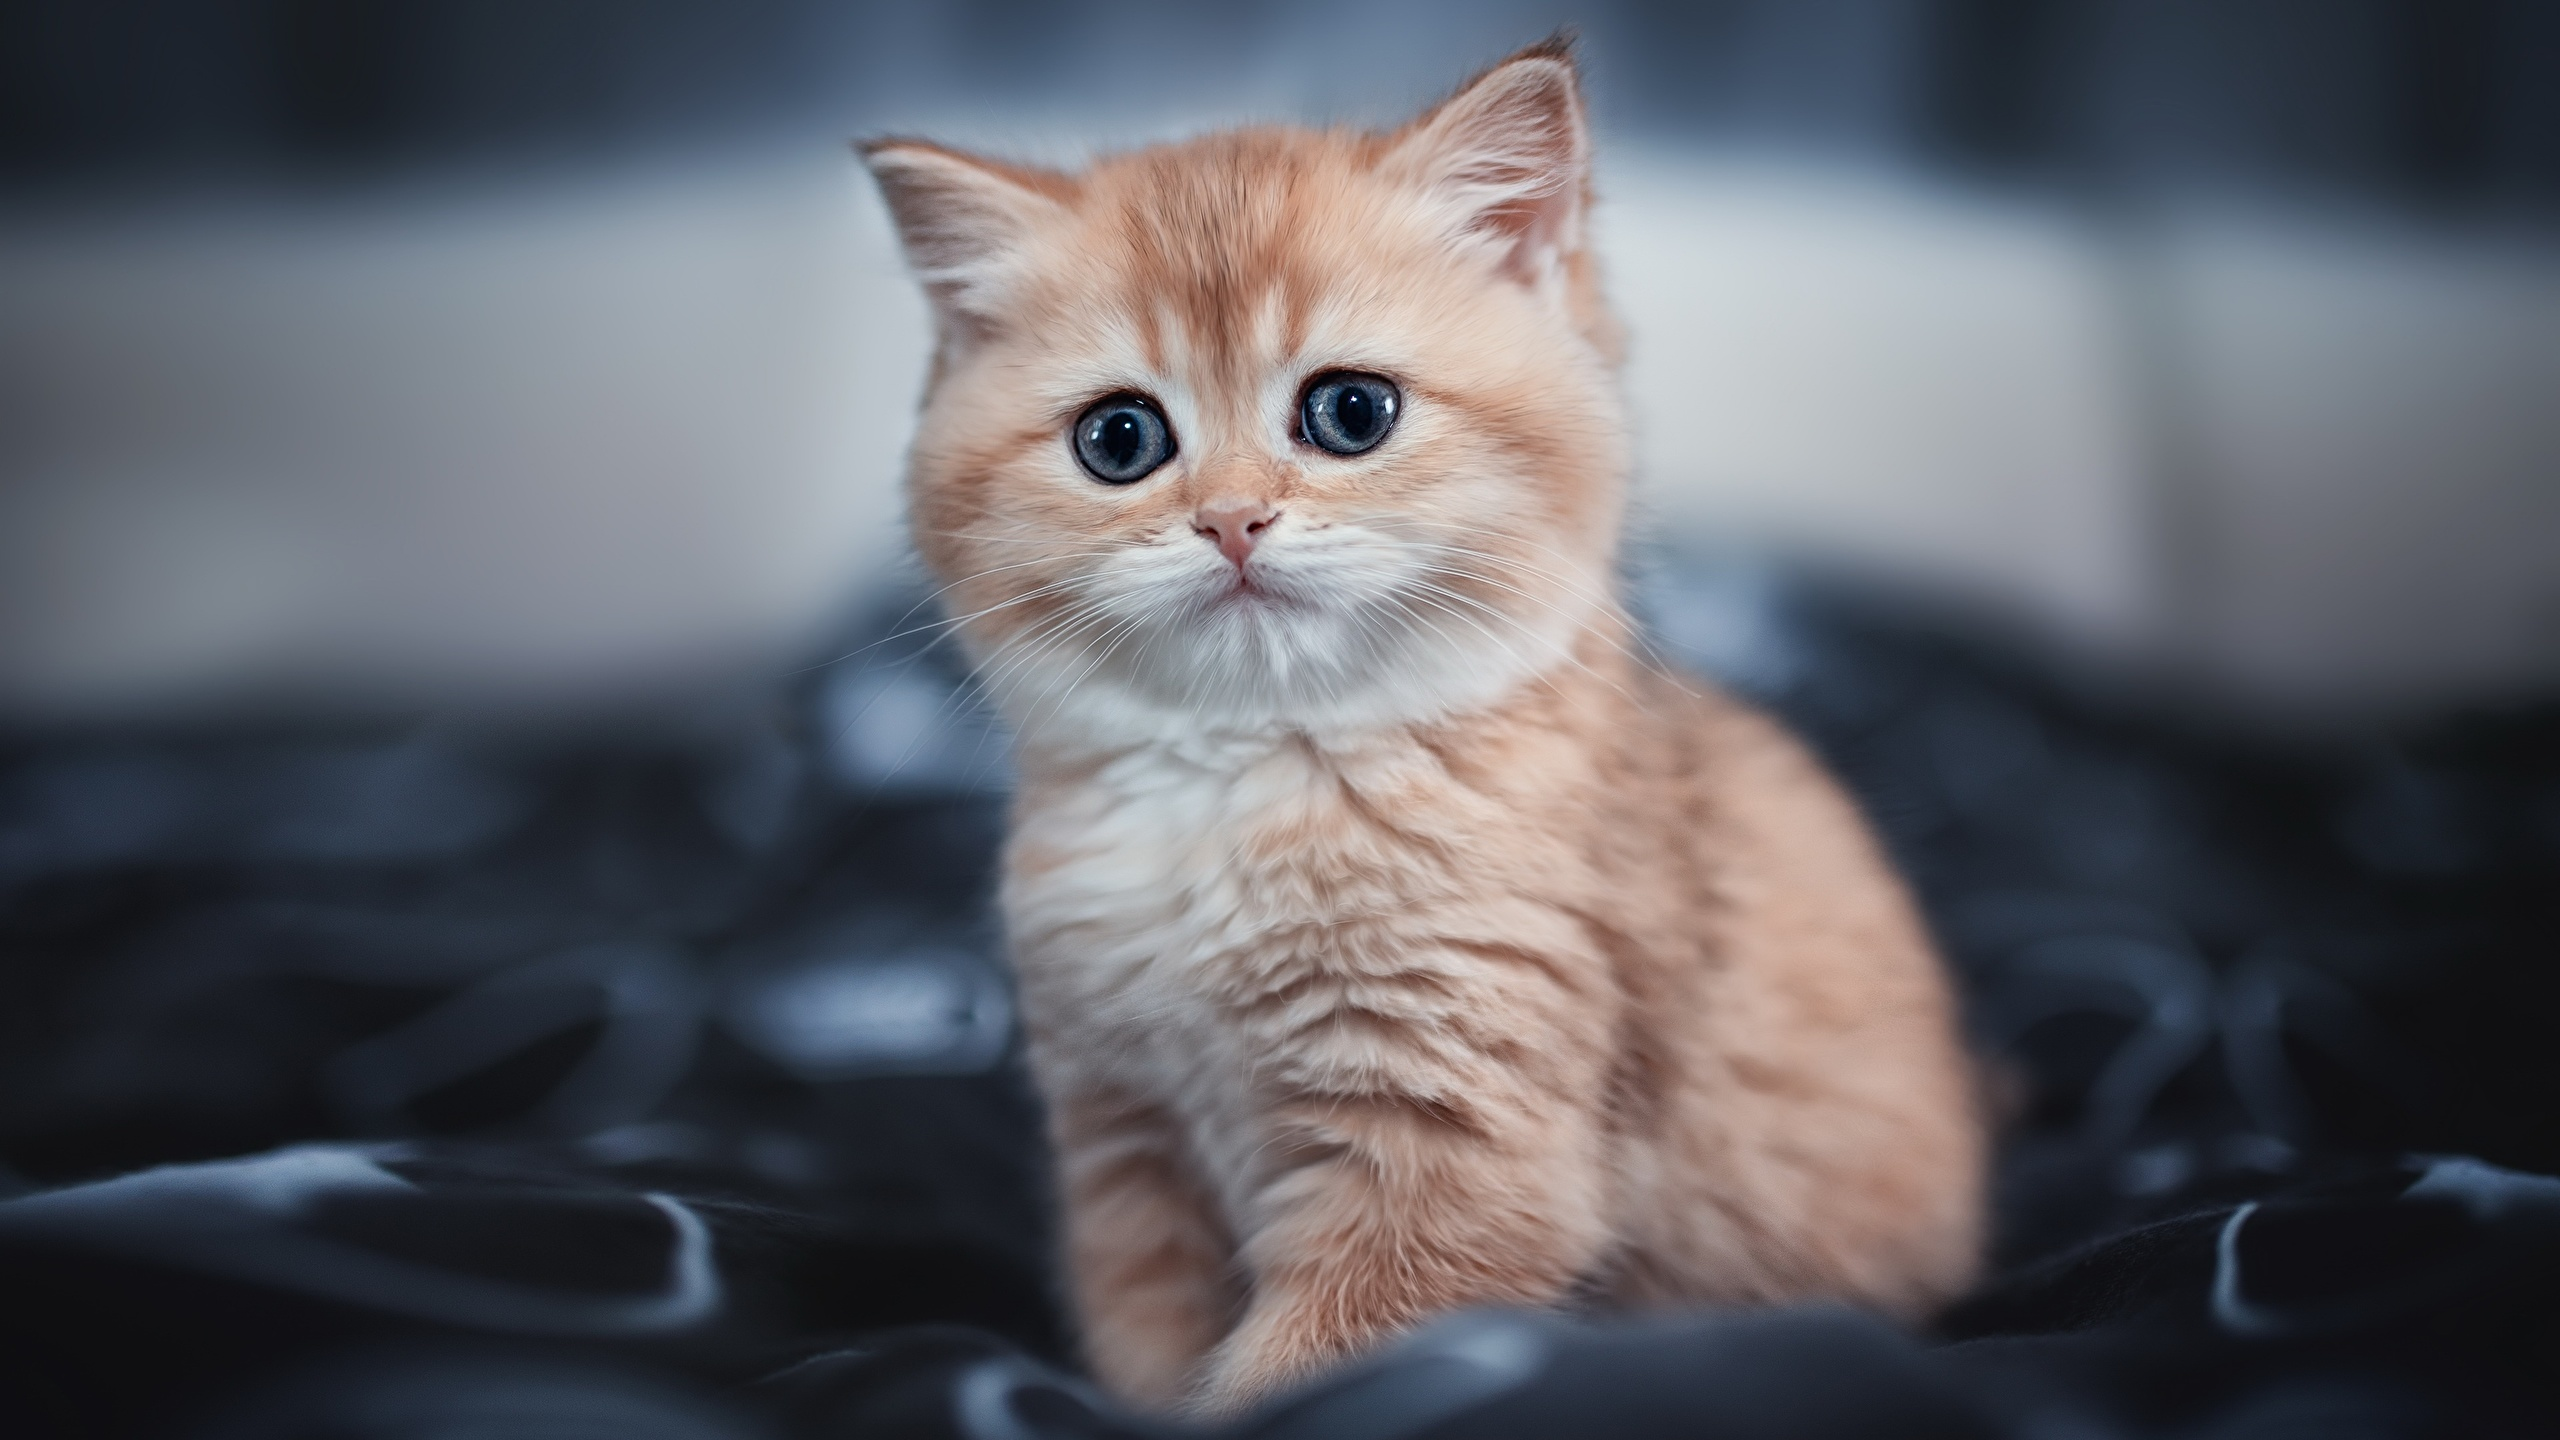 Images Kittens Cats Blurred Background Sweet Glance 2560x1440